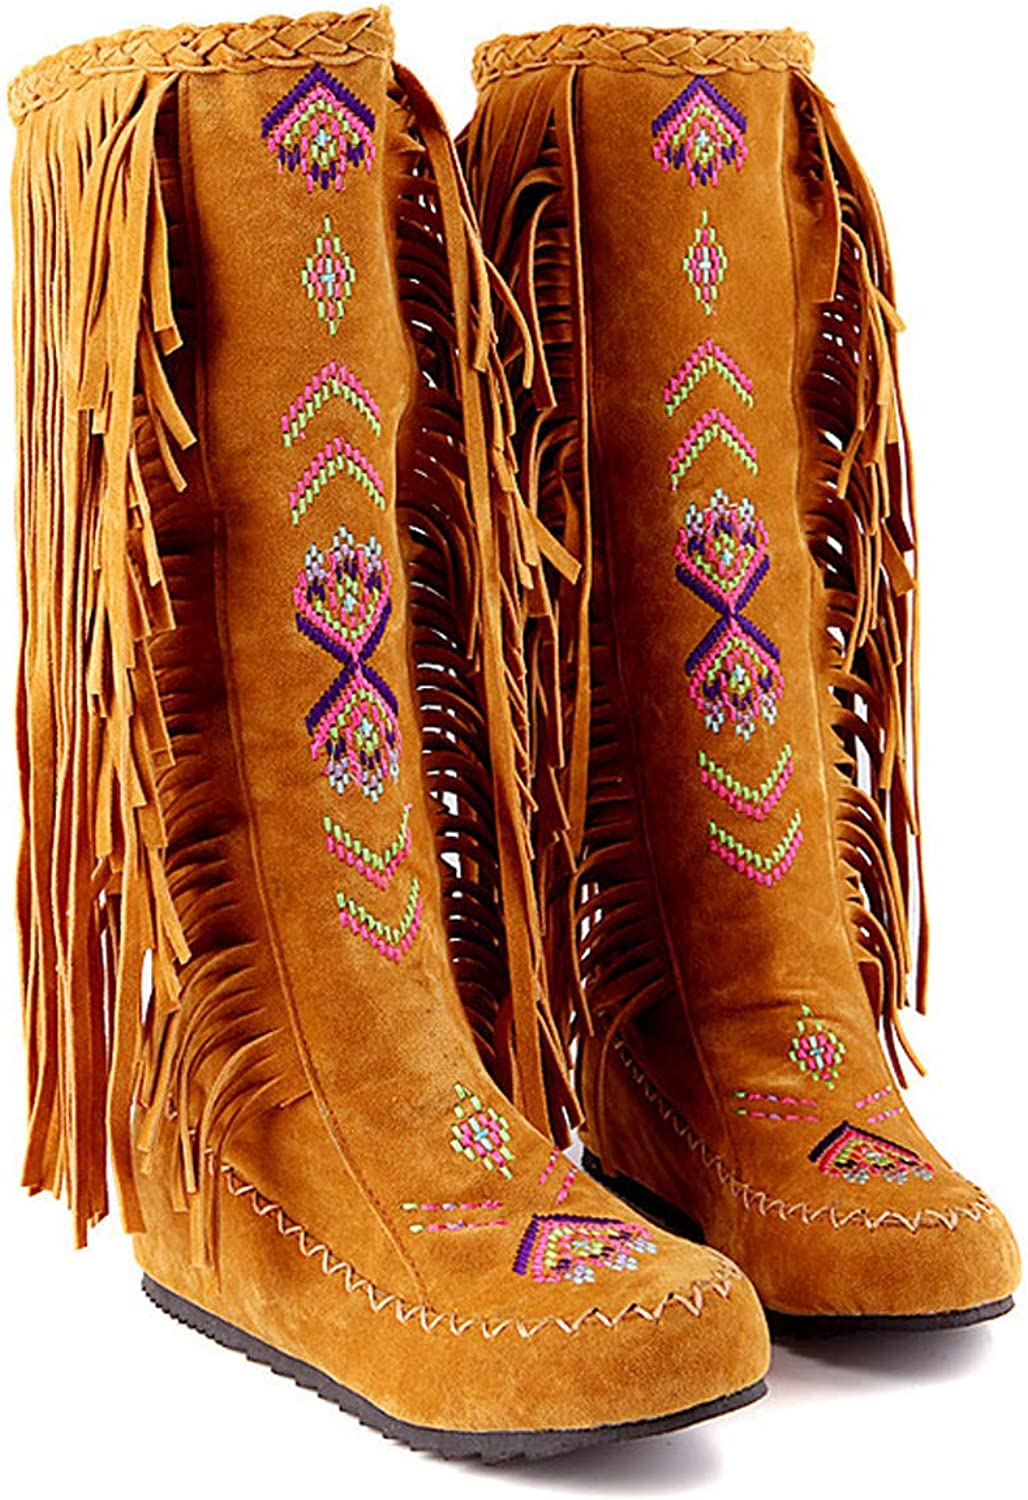 Womens Wedge Heel Boots Over The Knee Ethnic Style Embroidery Retro Fringe Calf Boots